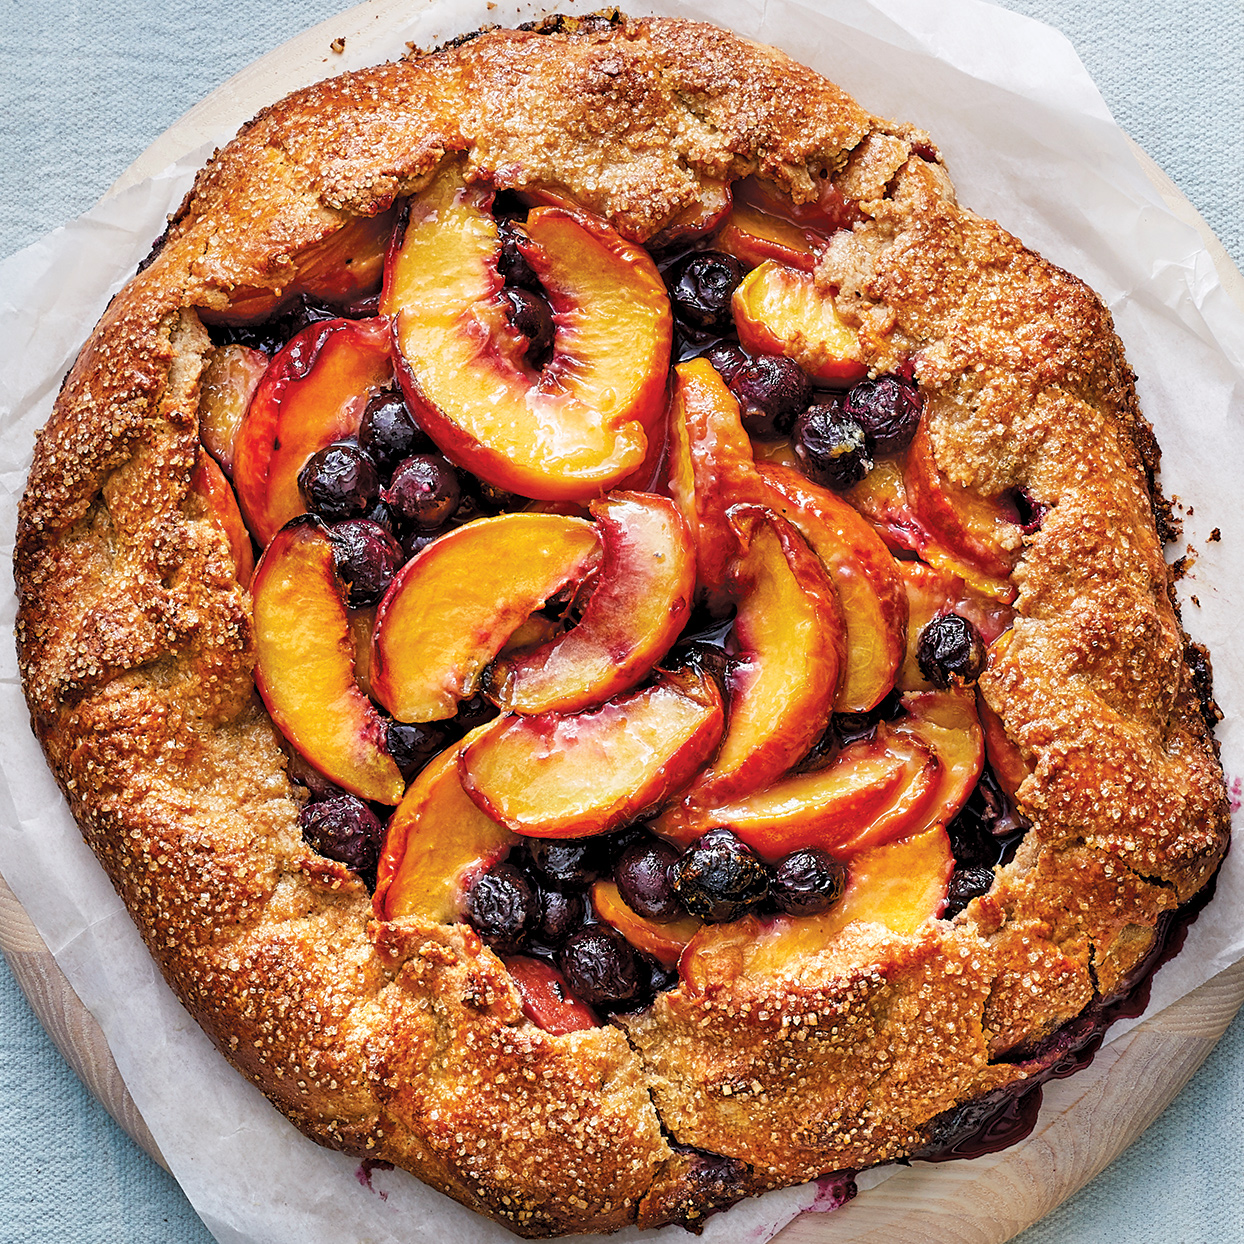 With summery, bright fruit, this pie is a crowd- pleaser and pretty enough to be the centerpiece for a summer dinner party. The crust is tender, with a deeper flavor from the whole-wheat flour than you would get with a plain white-flour crust. Source: 400 Calorie Recipes